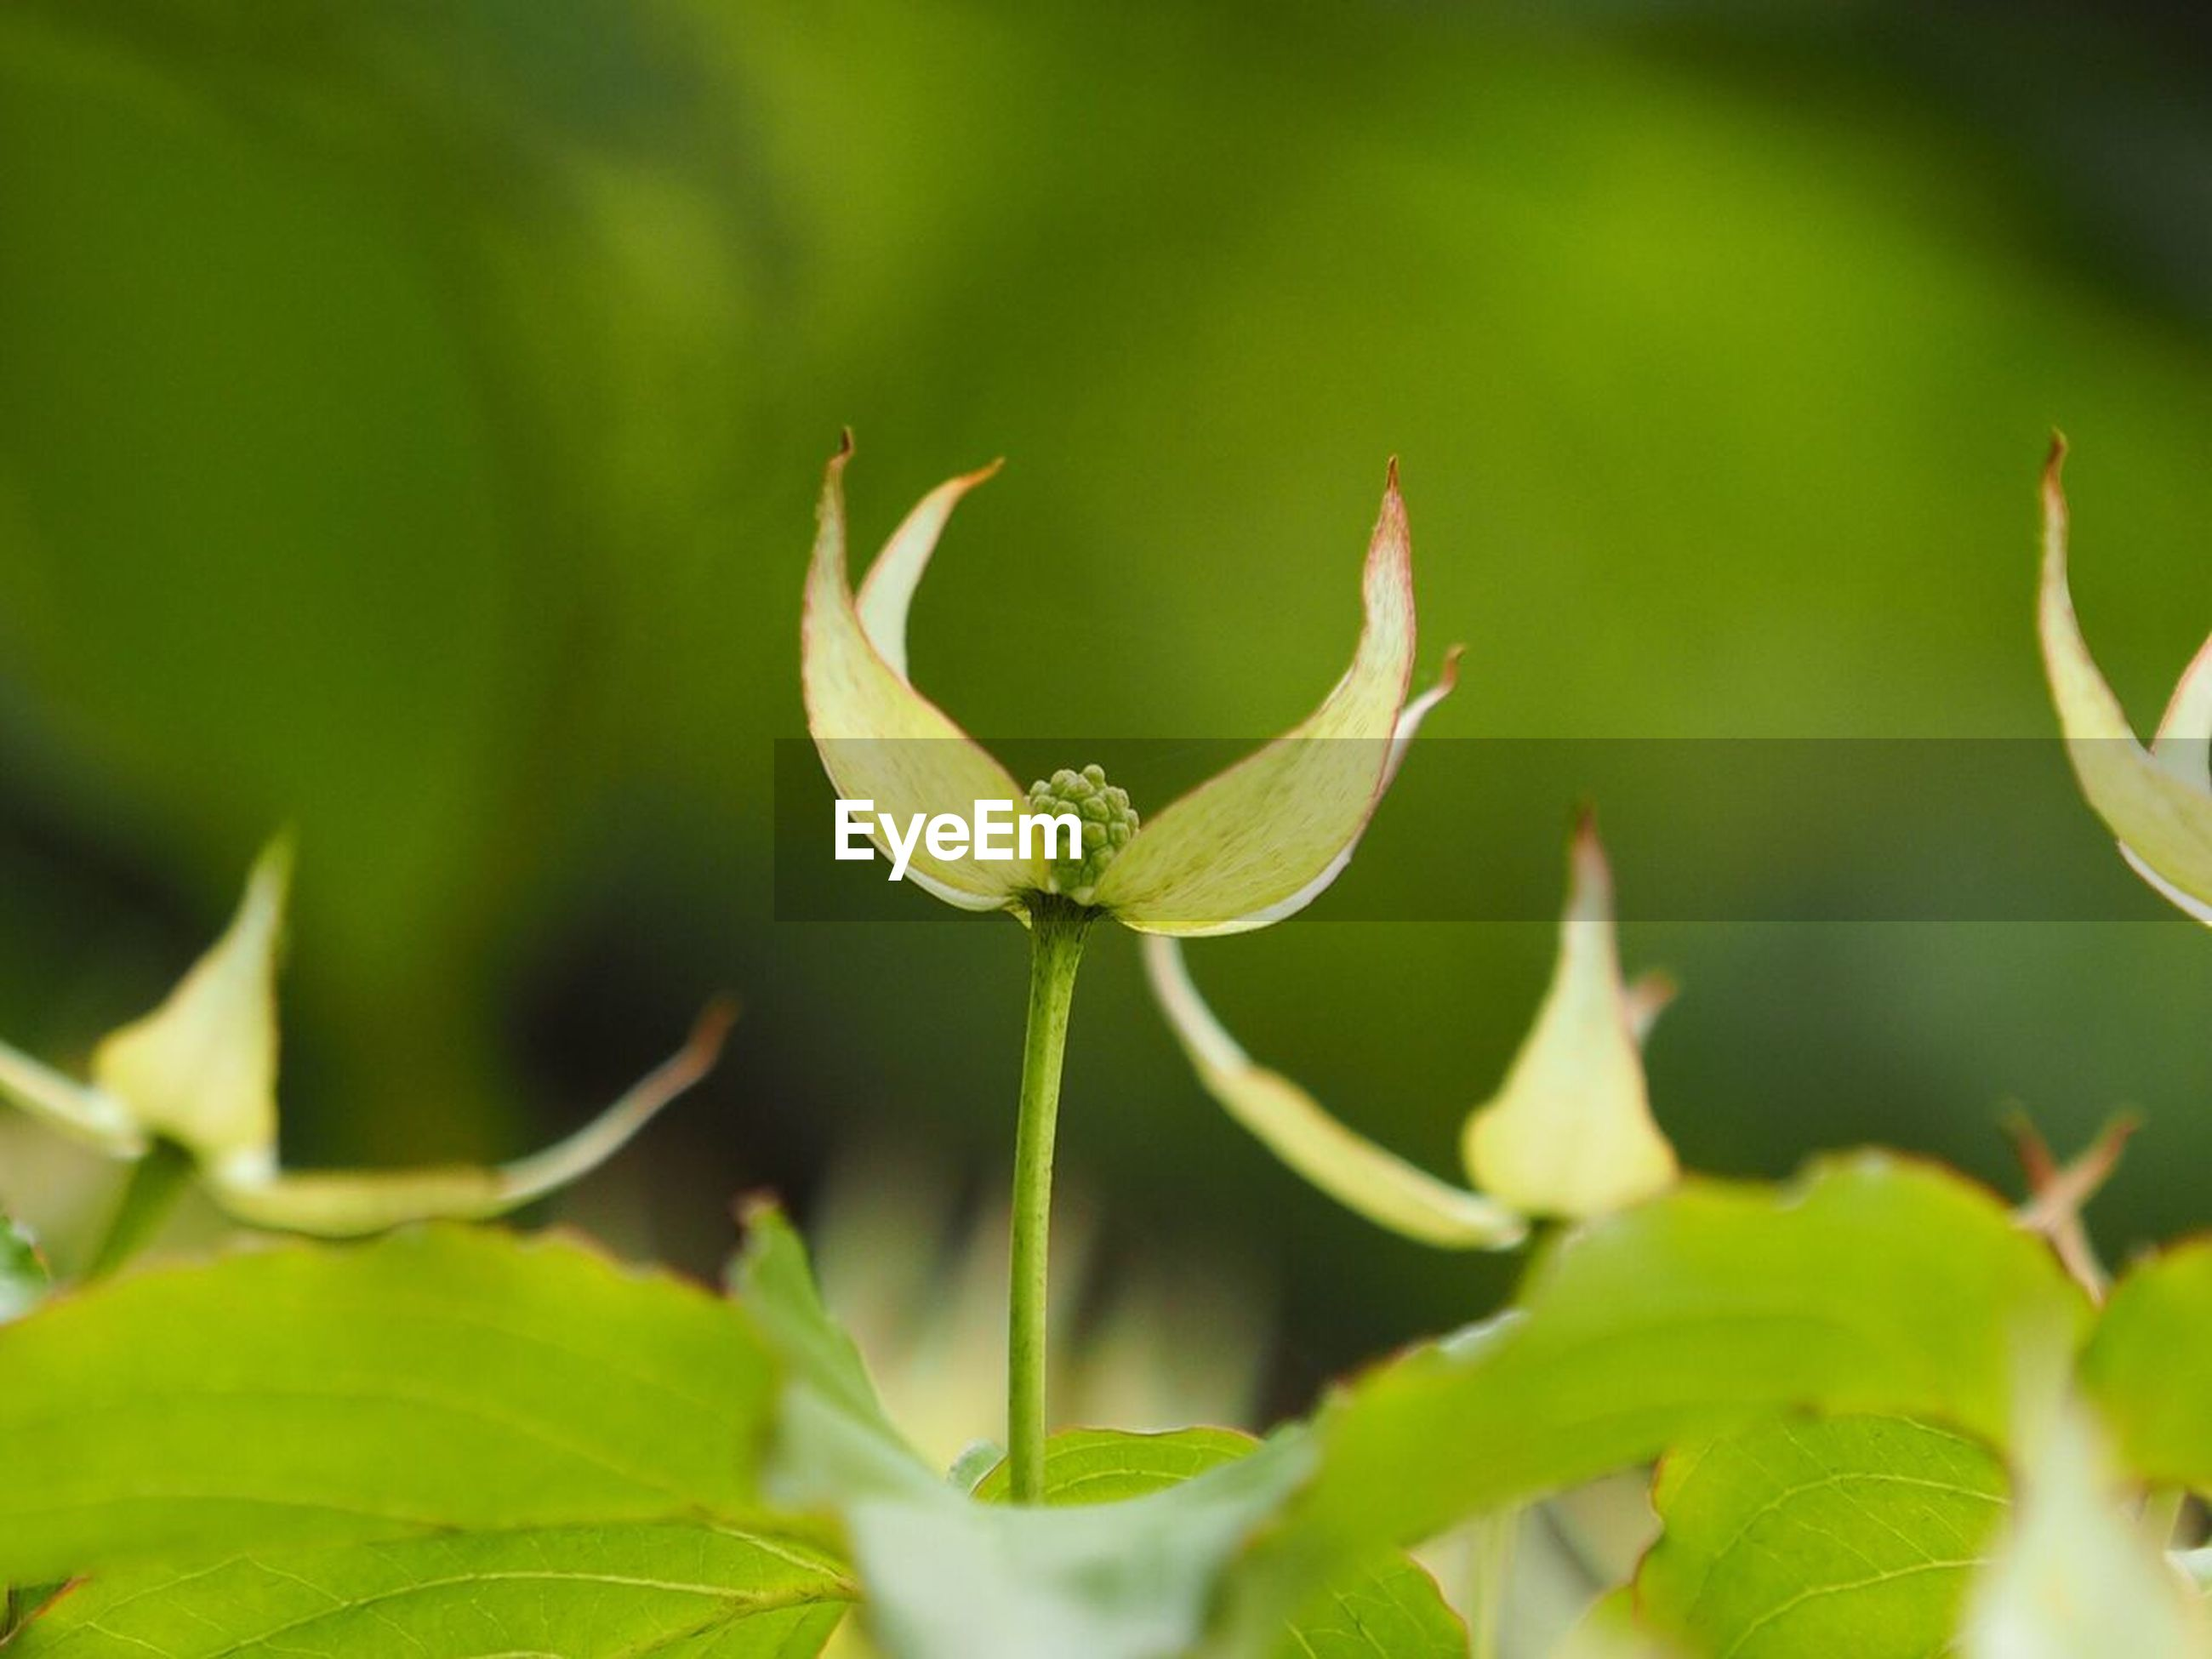 leaf, growth, close-up, focus on foreground, plant, green color, freshness, fragility, nature, flower, beauty in nature, selective focus, stem, bud, petal, new life, outdoors, day, botany, beginnings